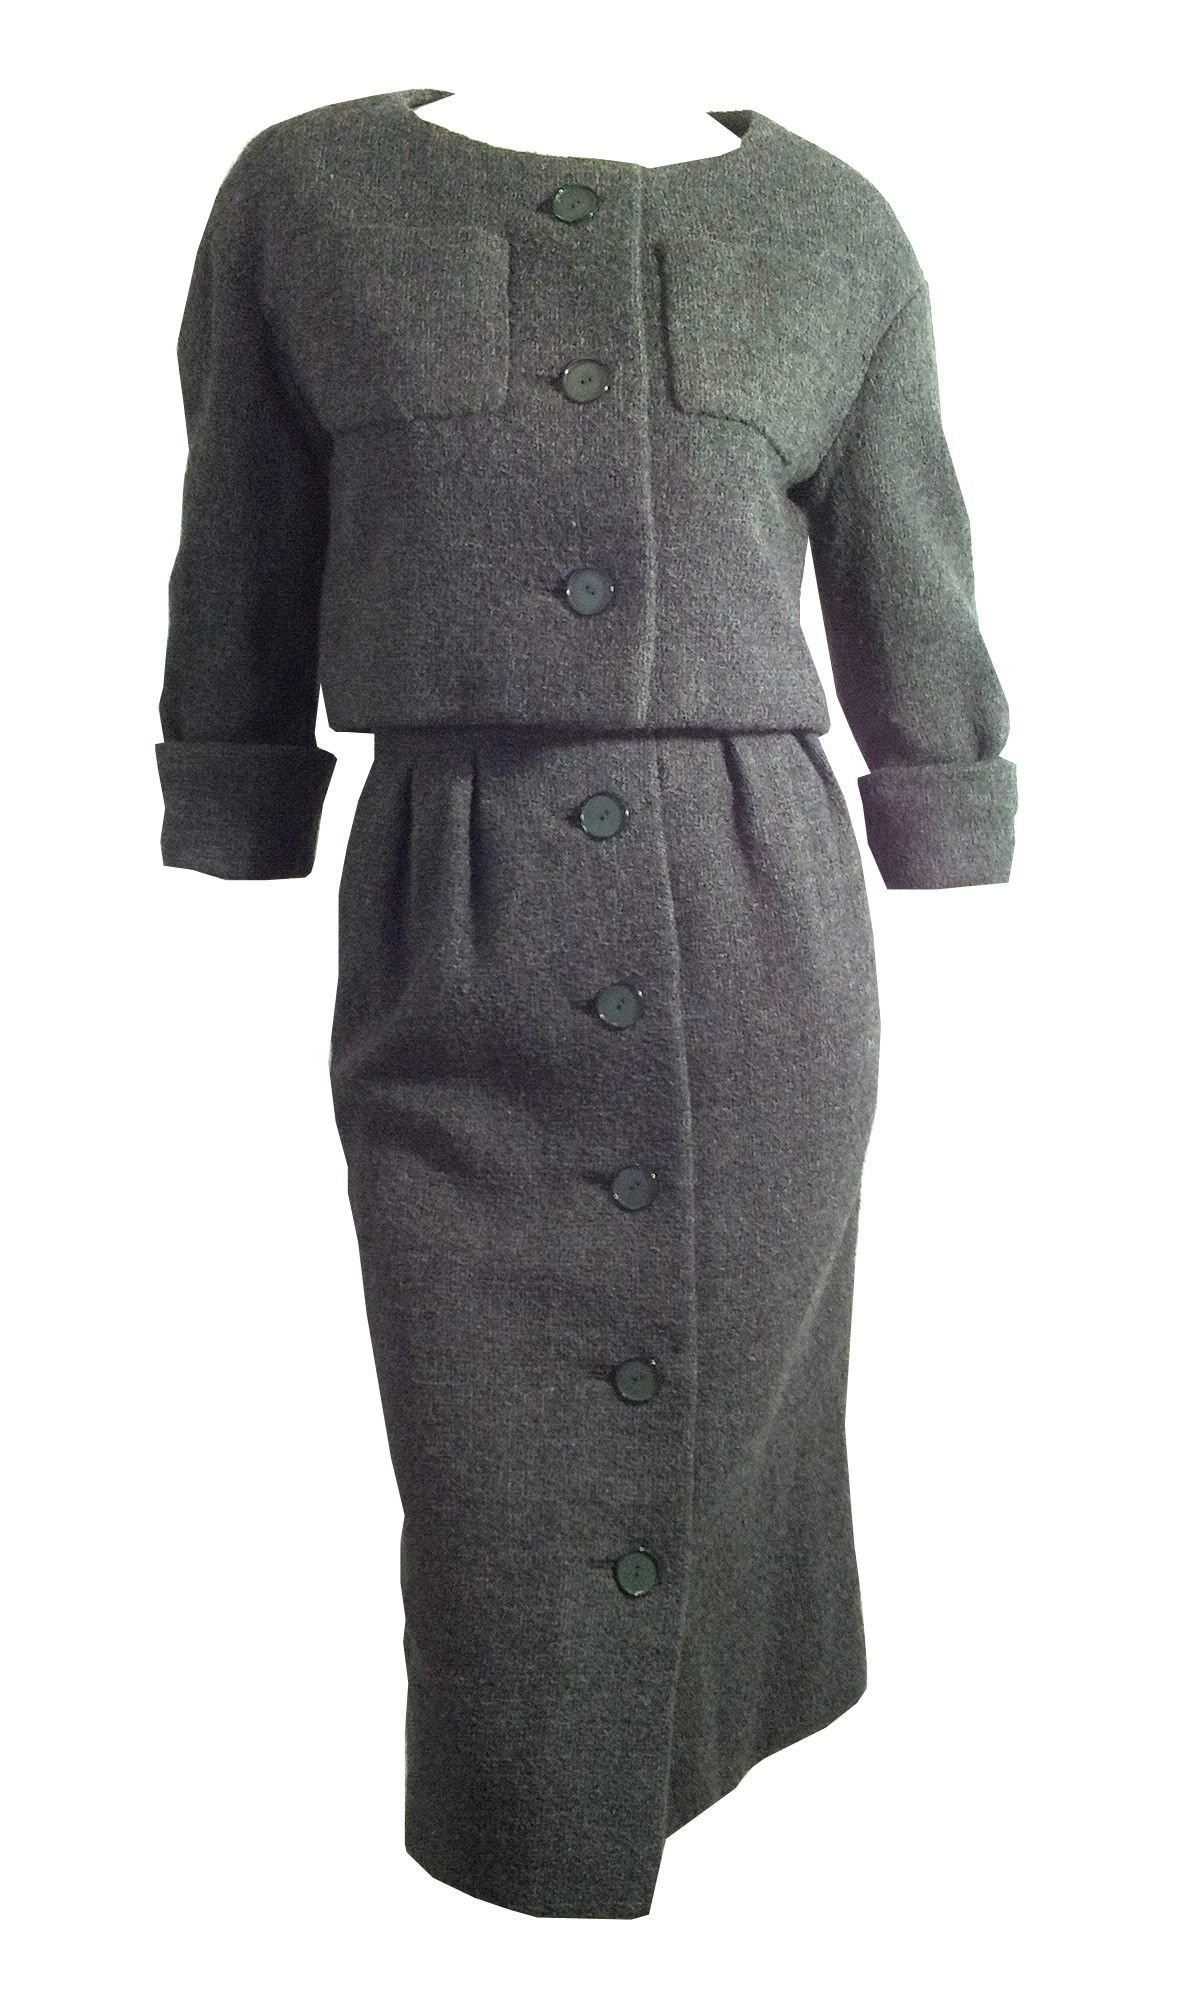 x ARCHIVED Couture Custom Charcoal Grey Wool Suit circa 1950s Christian Dior